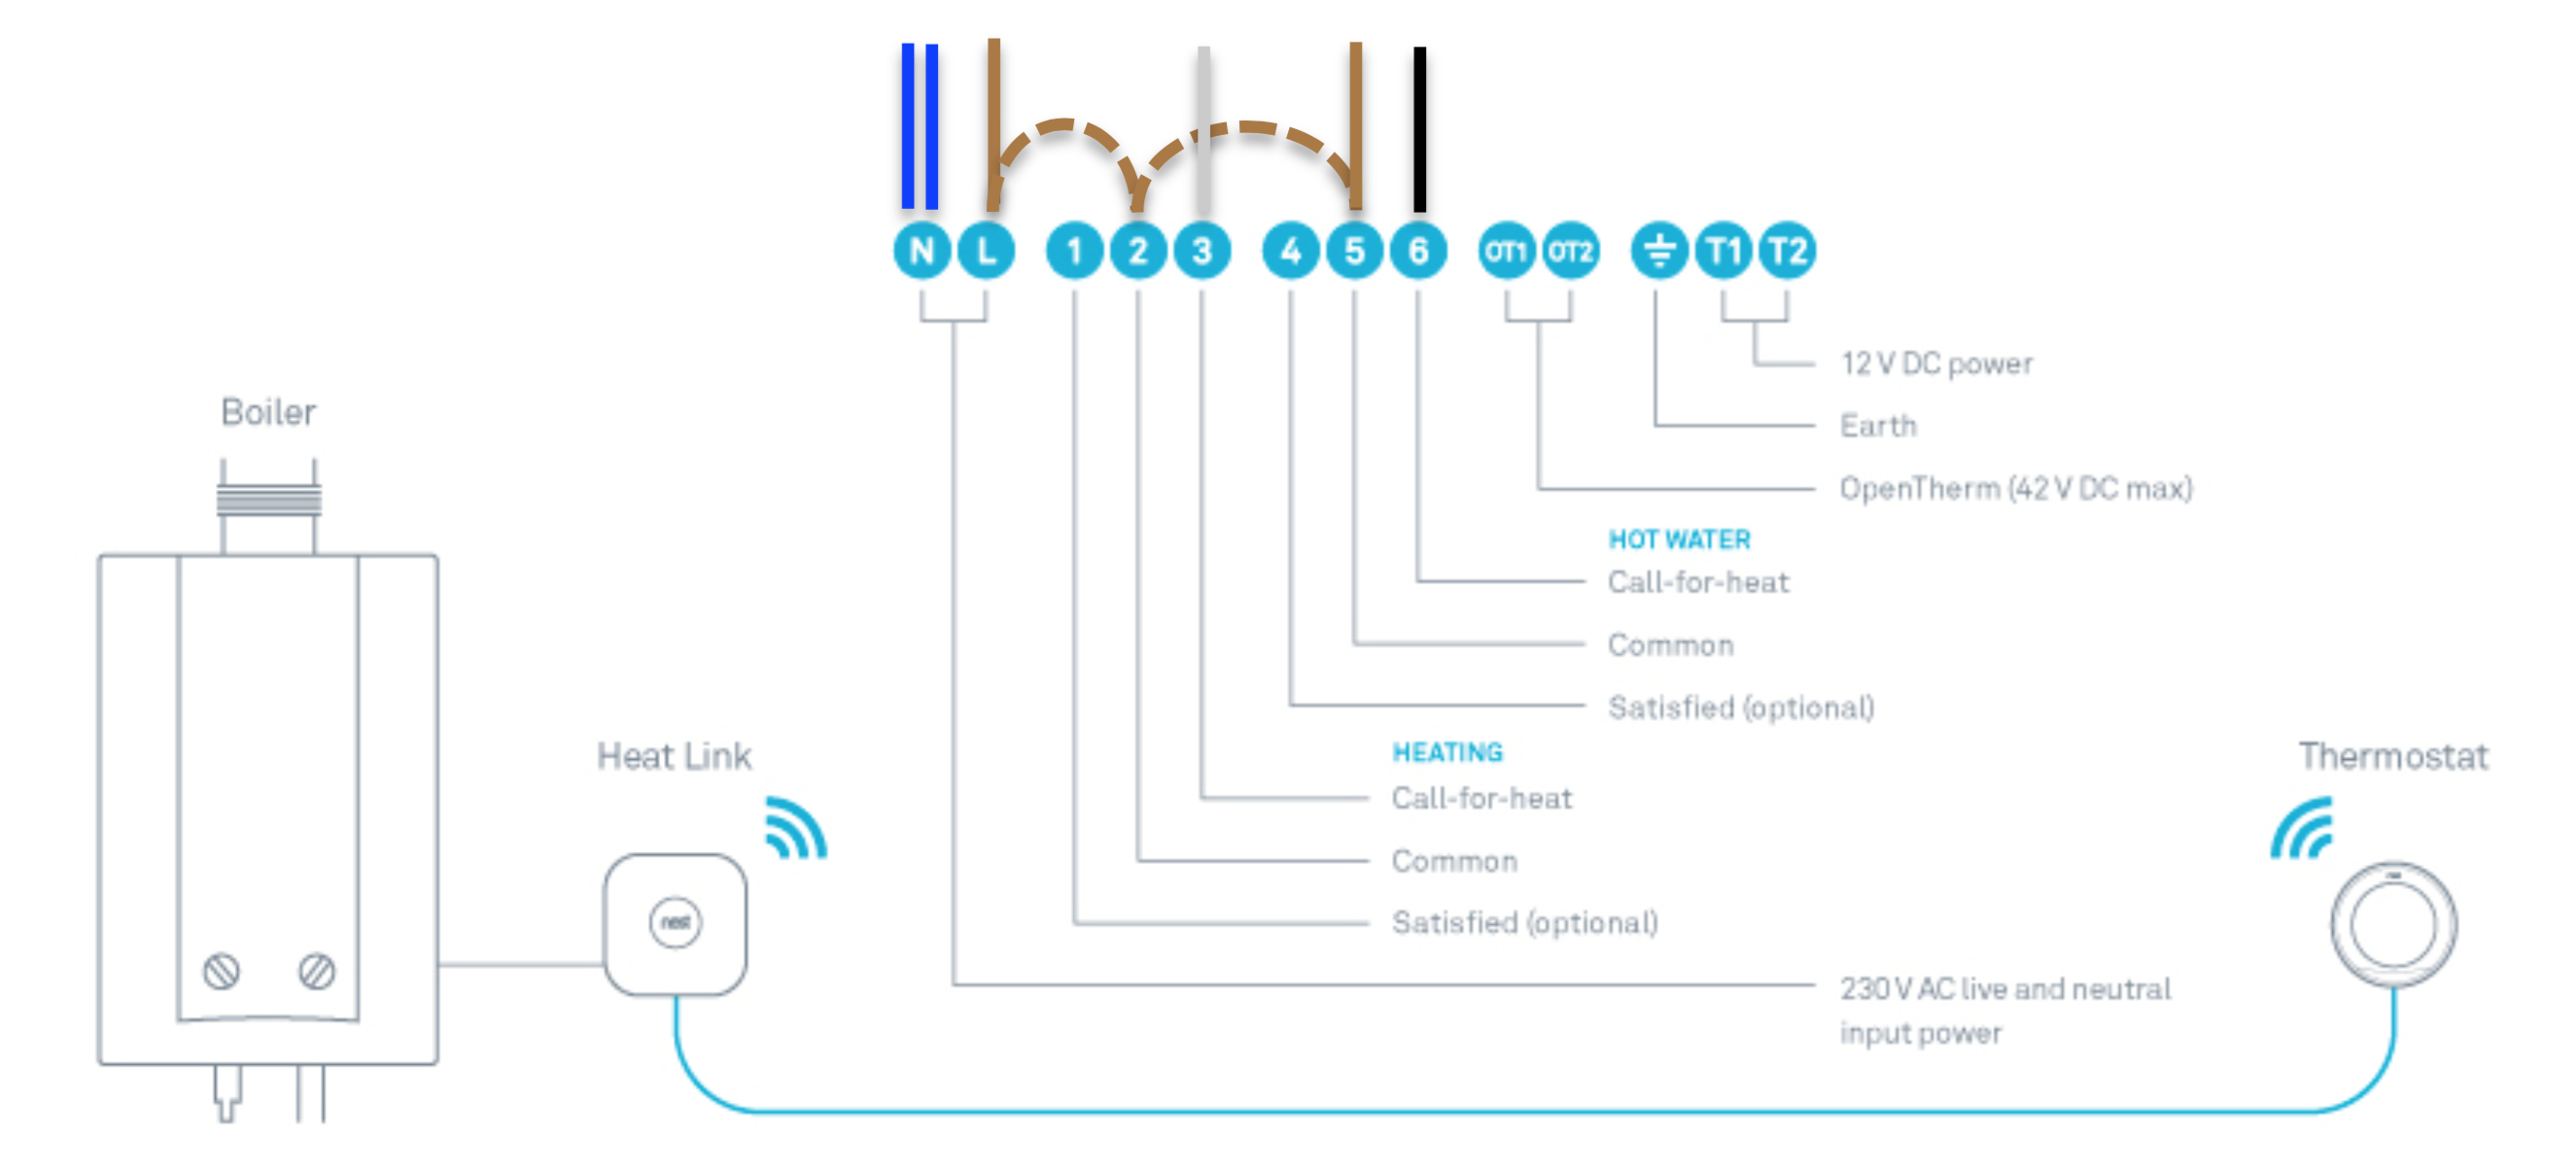 nest 3rd generation wiring diagram Download-Screen Shot 2016 02 02 at 21 45 27 15-g